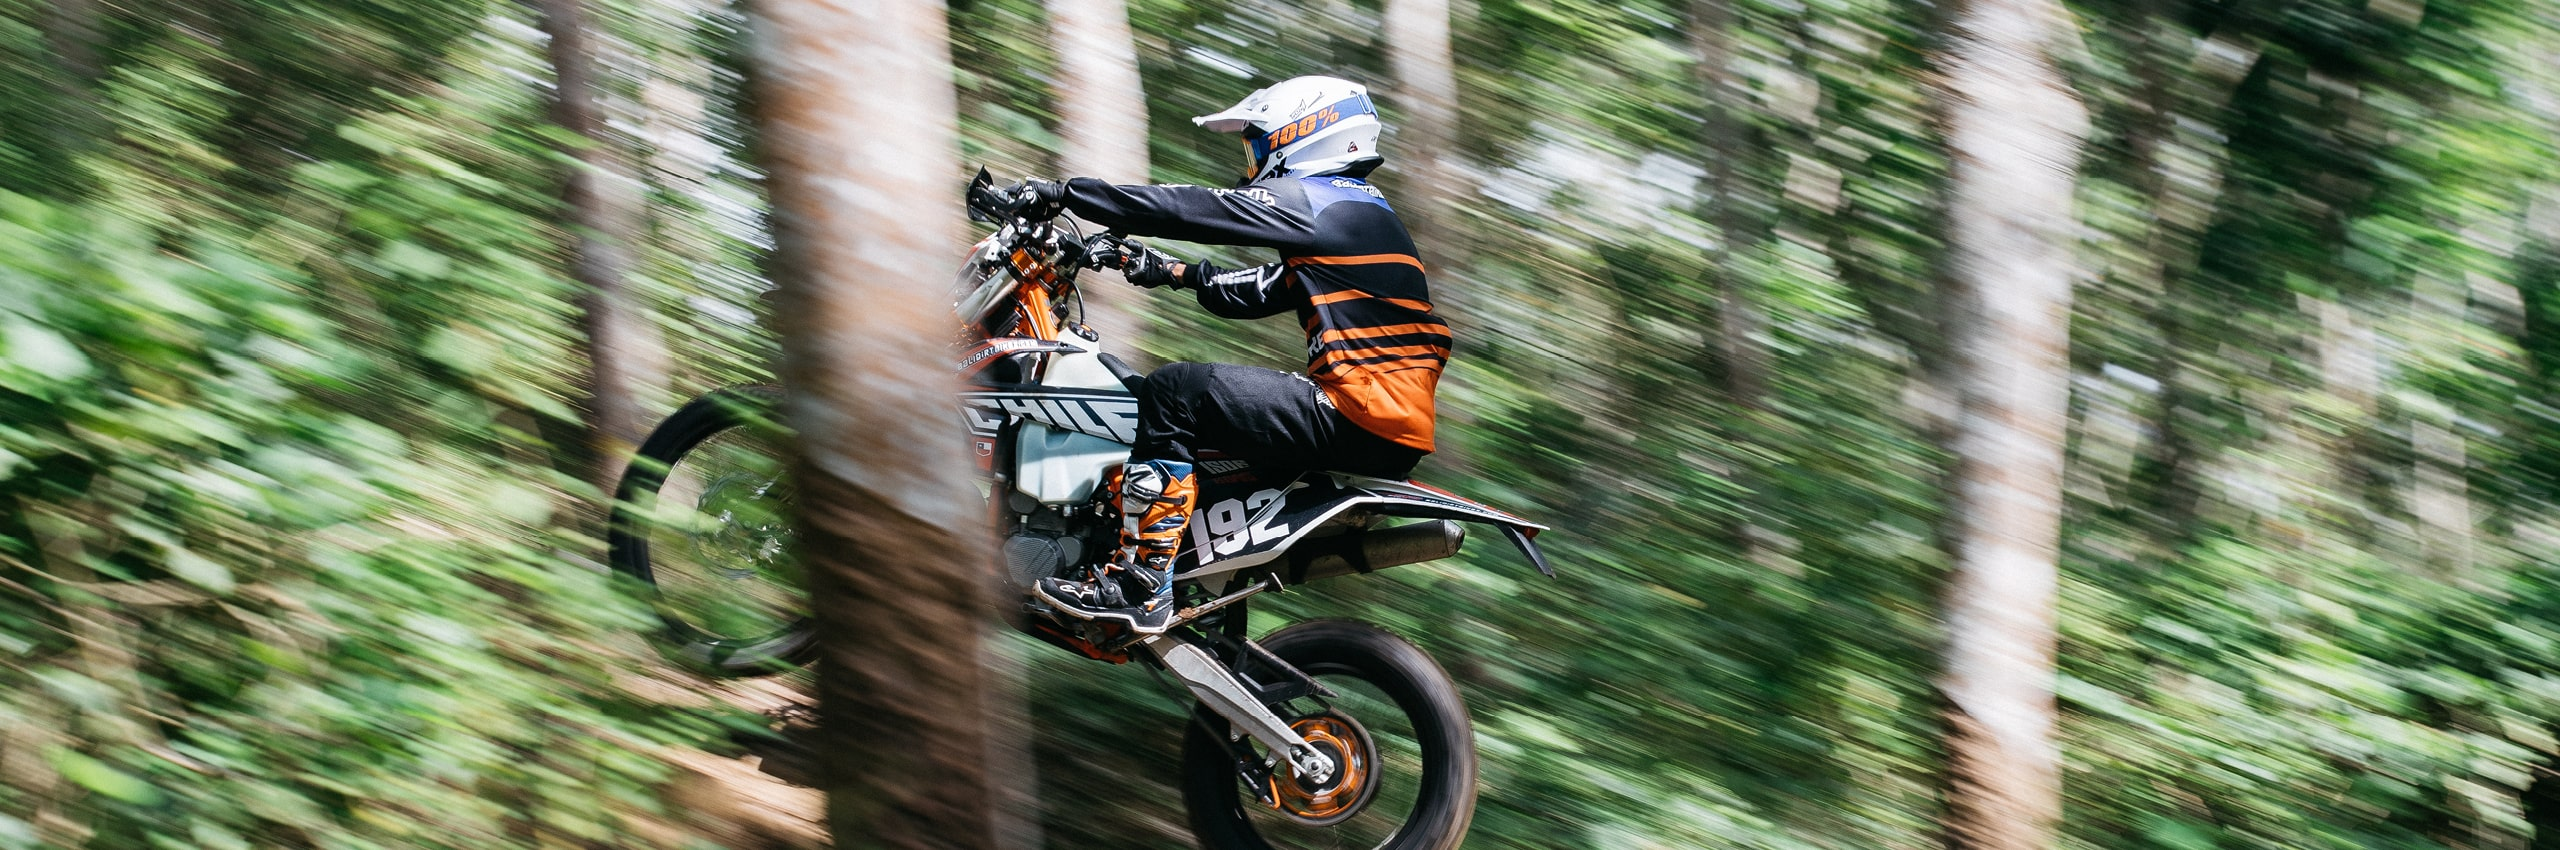 Bali_Dirt_Bikes_Rubber_Forest_Slider9